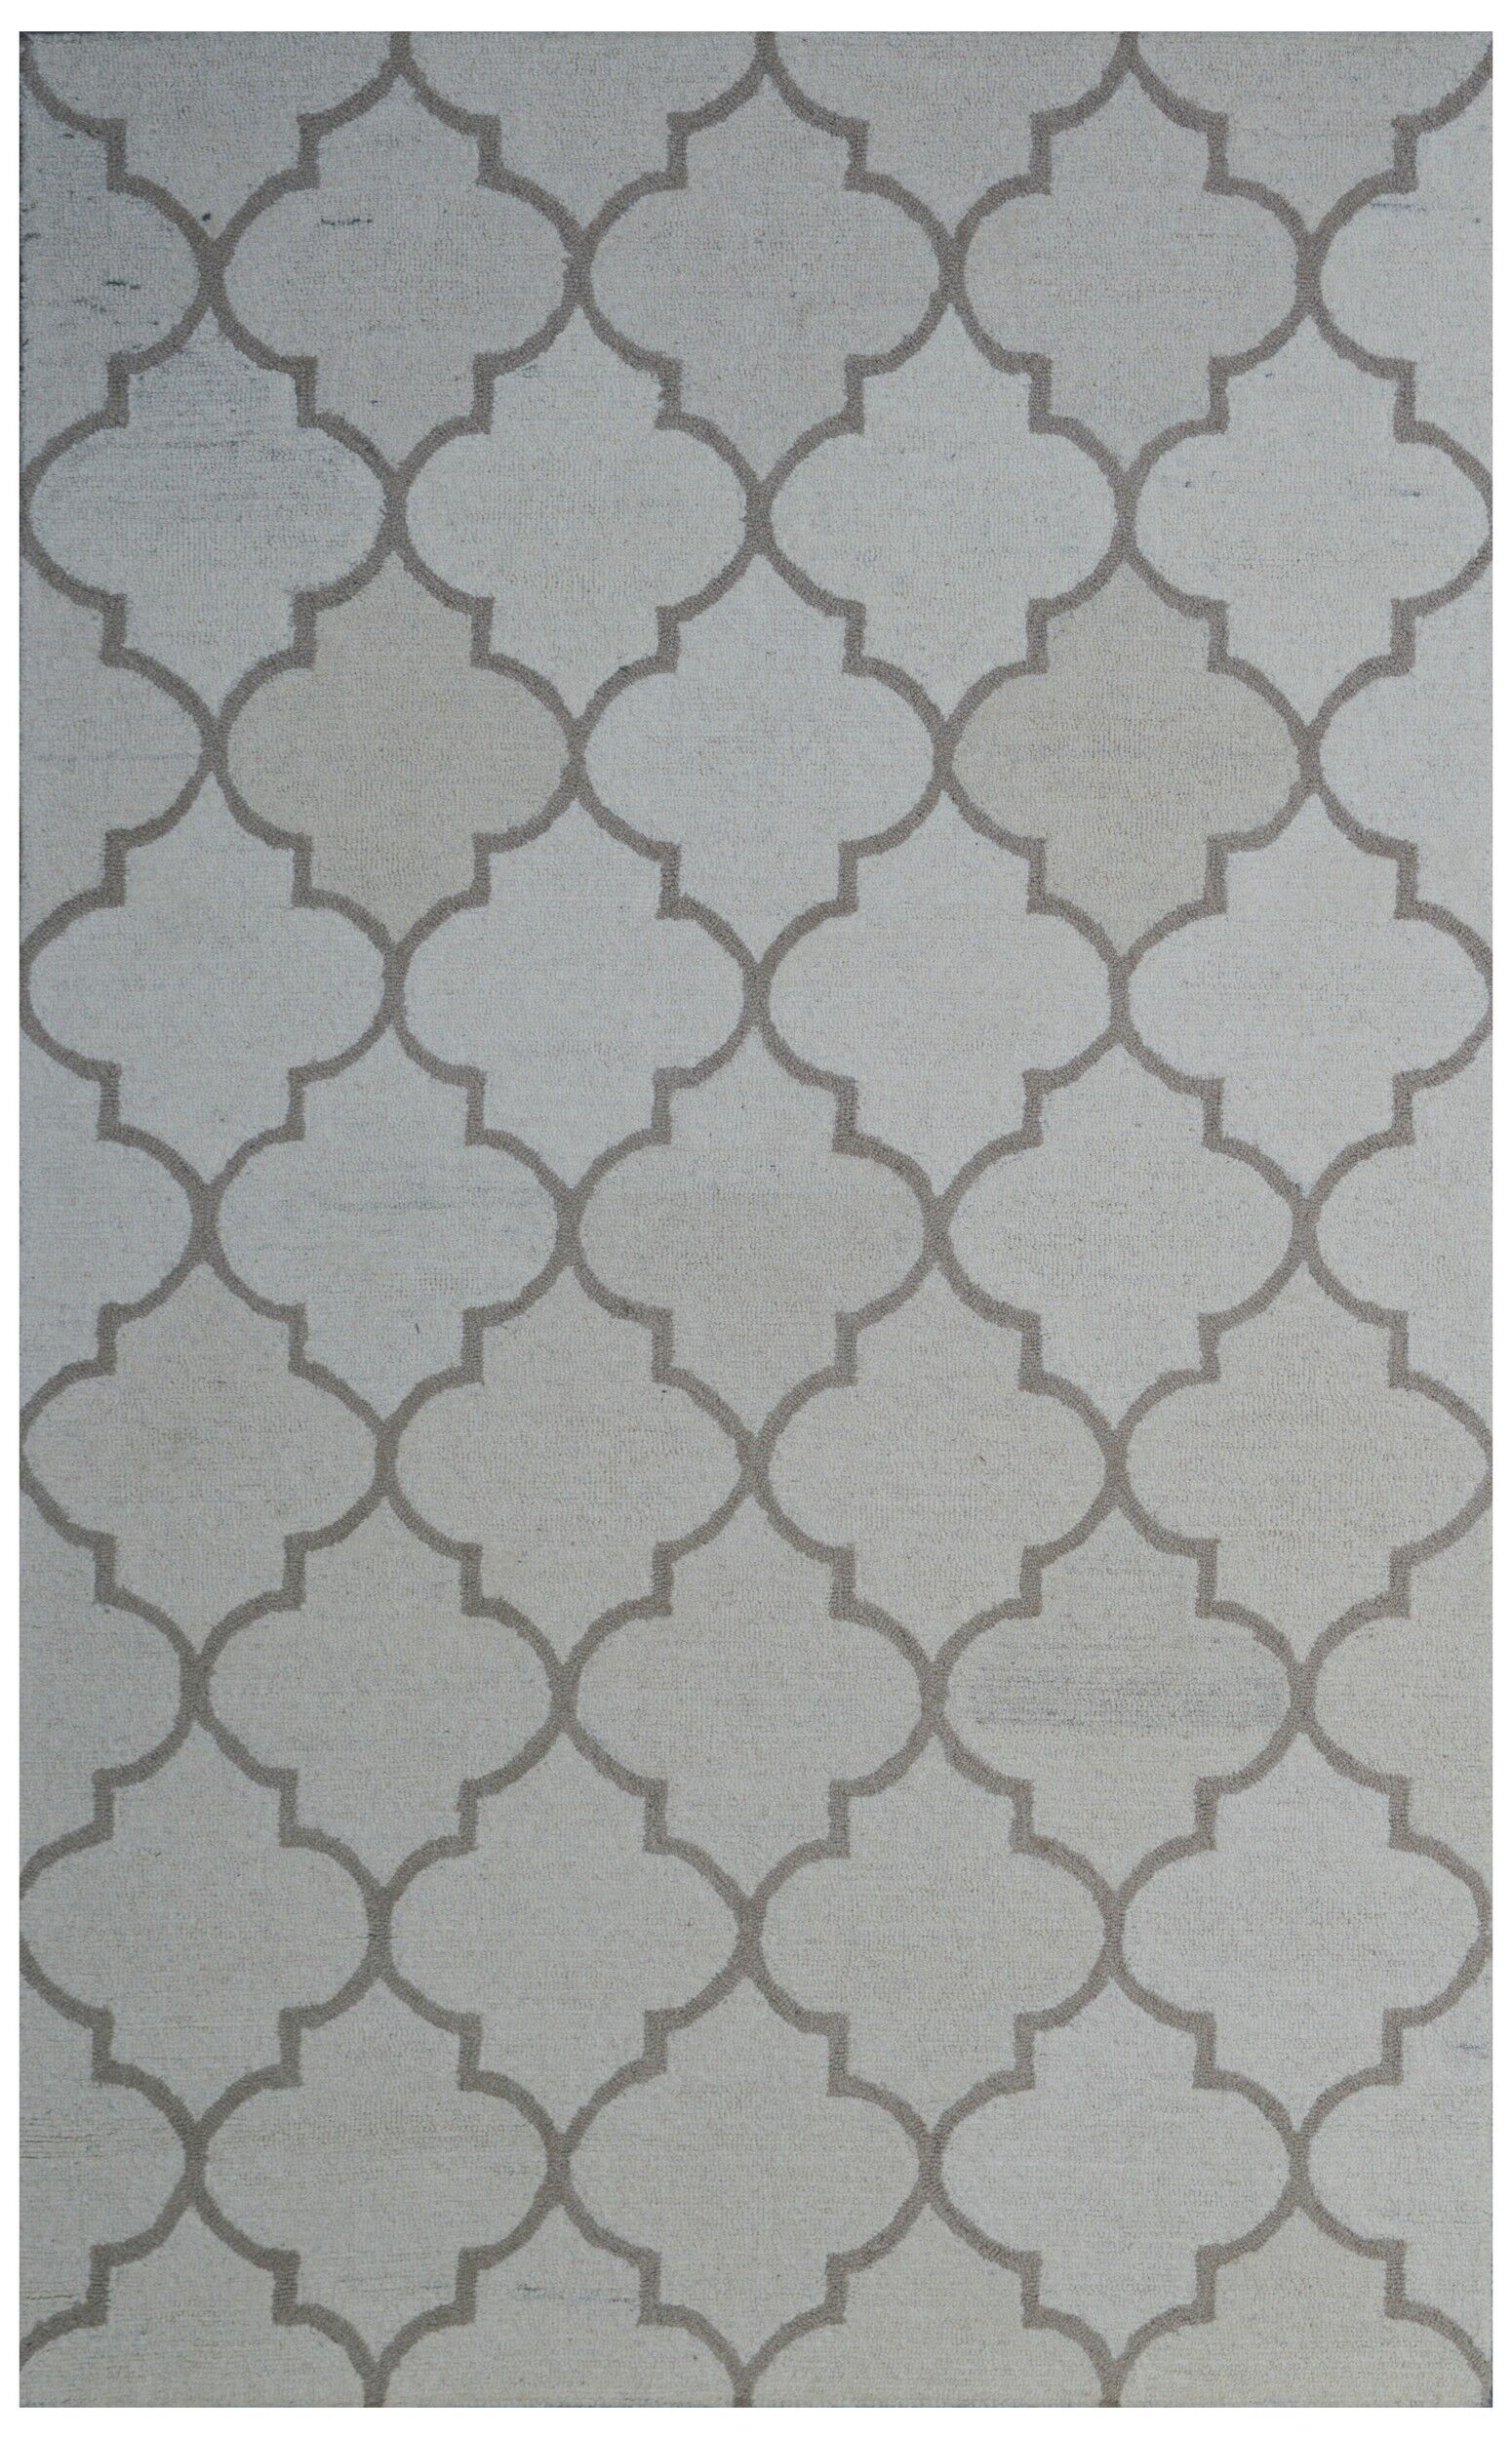 Wool Hand-Tufted Ivory/Rust Area Rug Rug Size: 5' x 8'